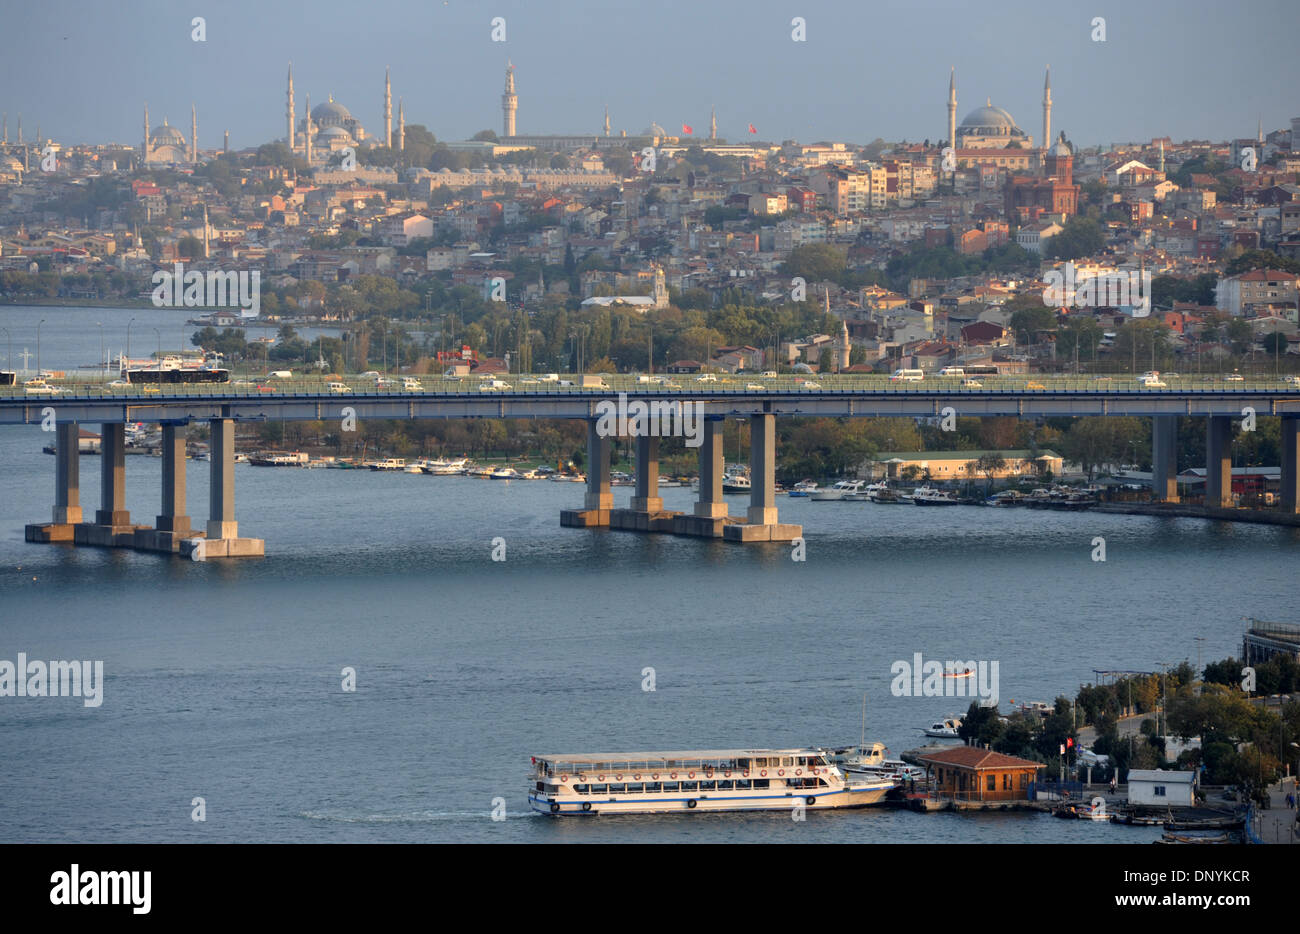 Bridge over the Golden Horn, from Pierre Loti, Istanbul, Turkey - Stock Image